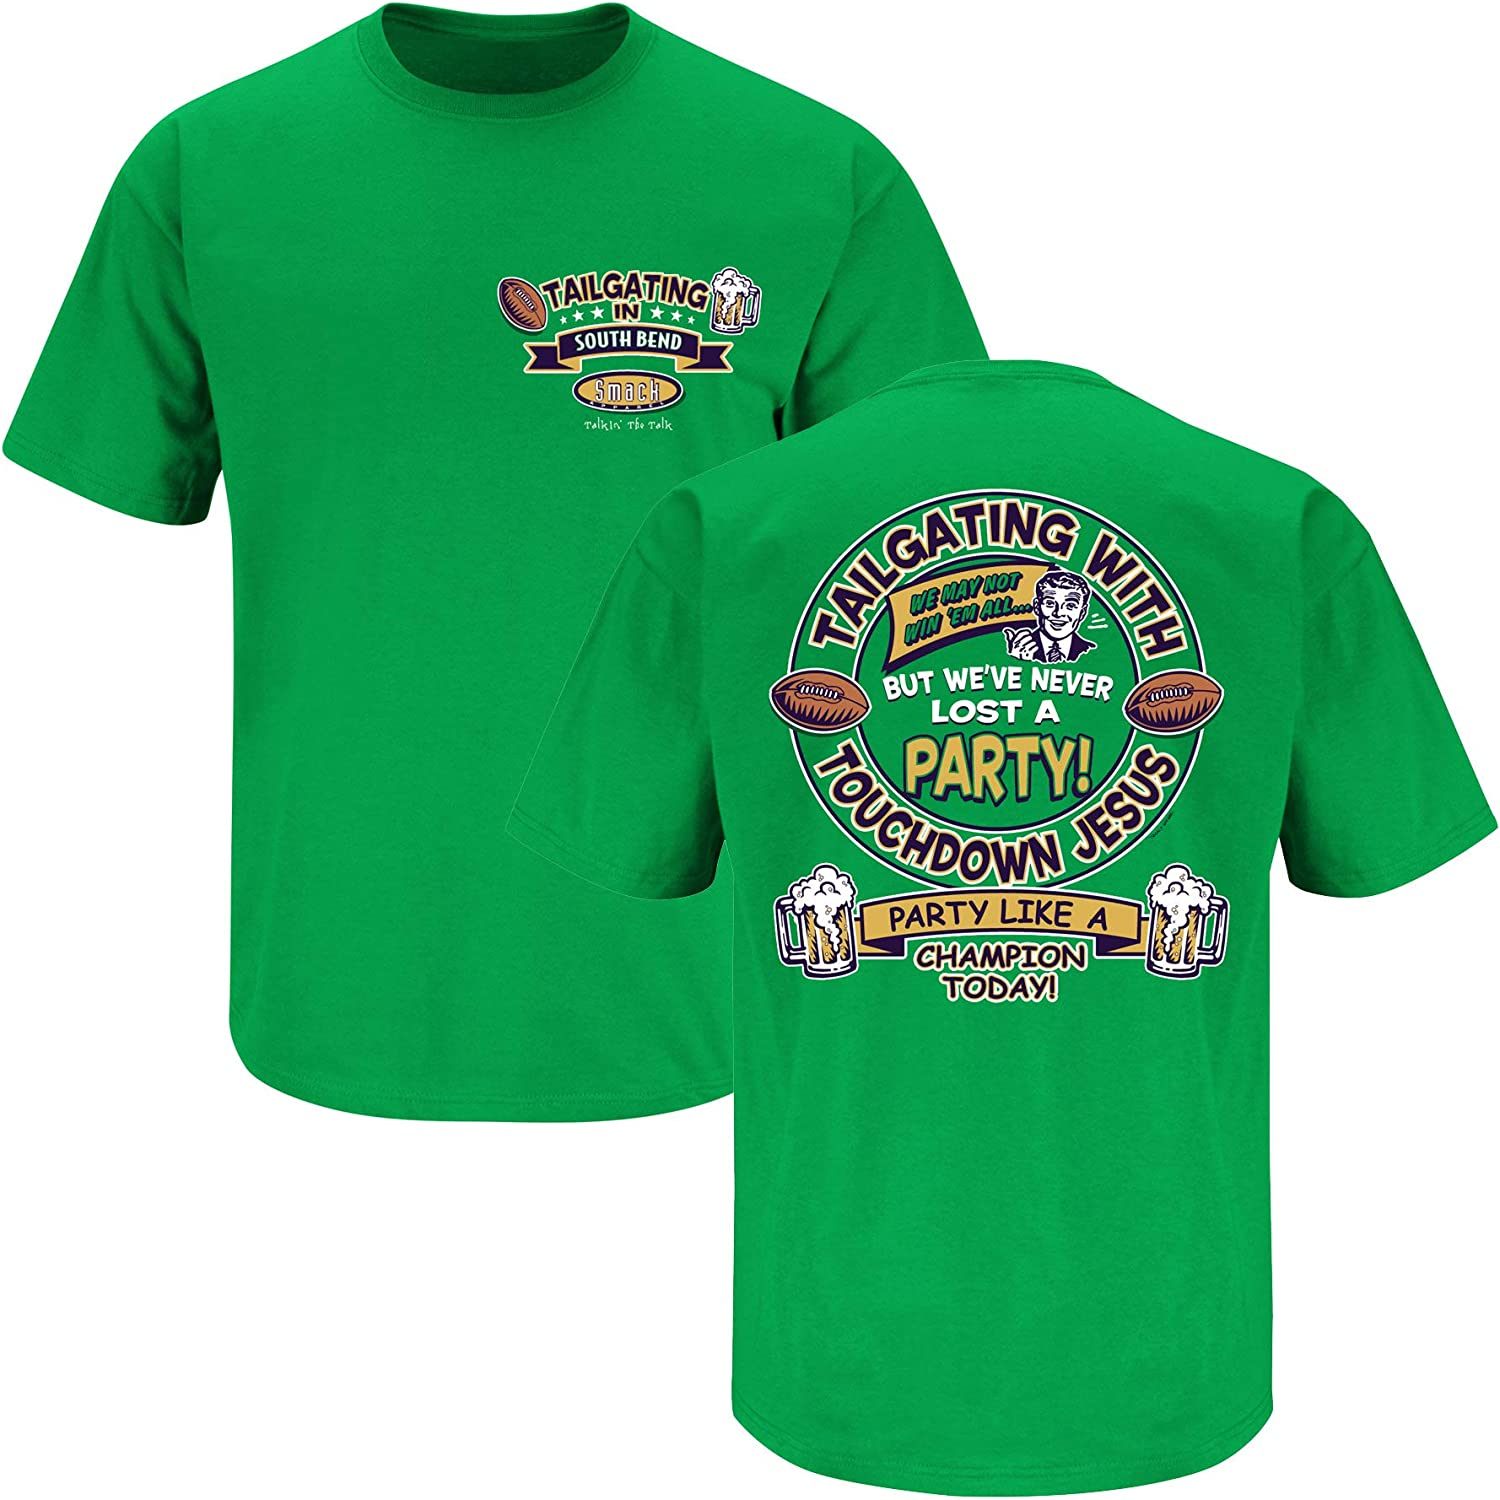 Tailgating in South Bend Green T Shirt Smack Apparel Notre Dame Football Fans Sm-5X